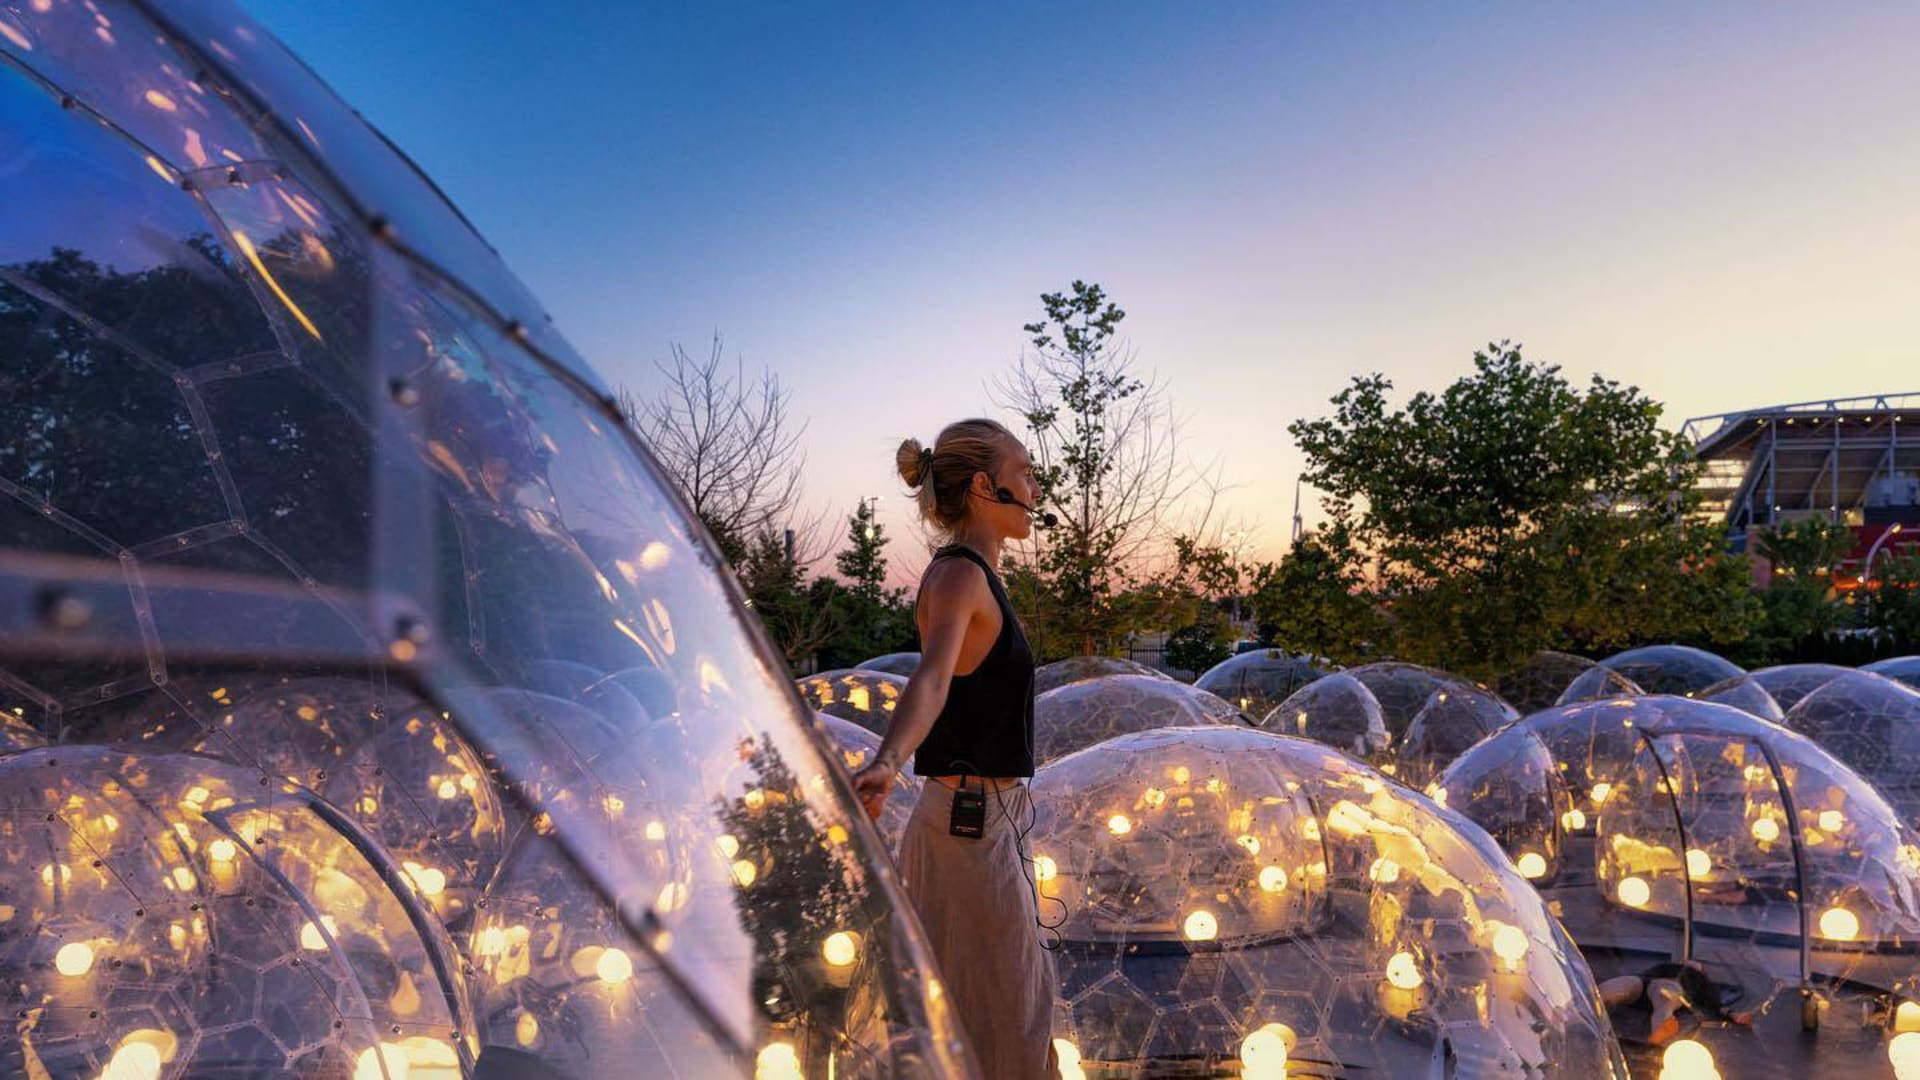 A weeks-long pop-up event in Toronto made group yoga and fitness classes possible. Set in an urban park, 50 clear, geodesic domes enabled social distancing while clients worked out in the safety of their individual chambers, with instruction piped in via wireless speakers.